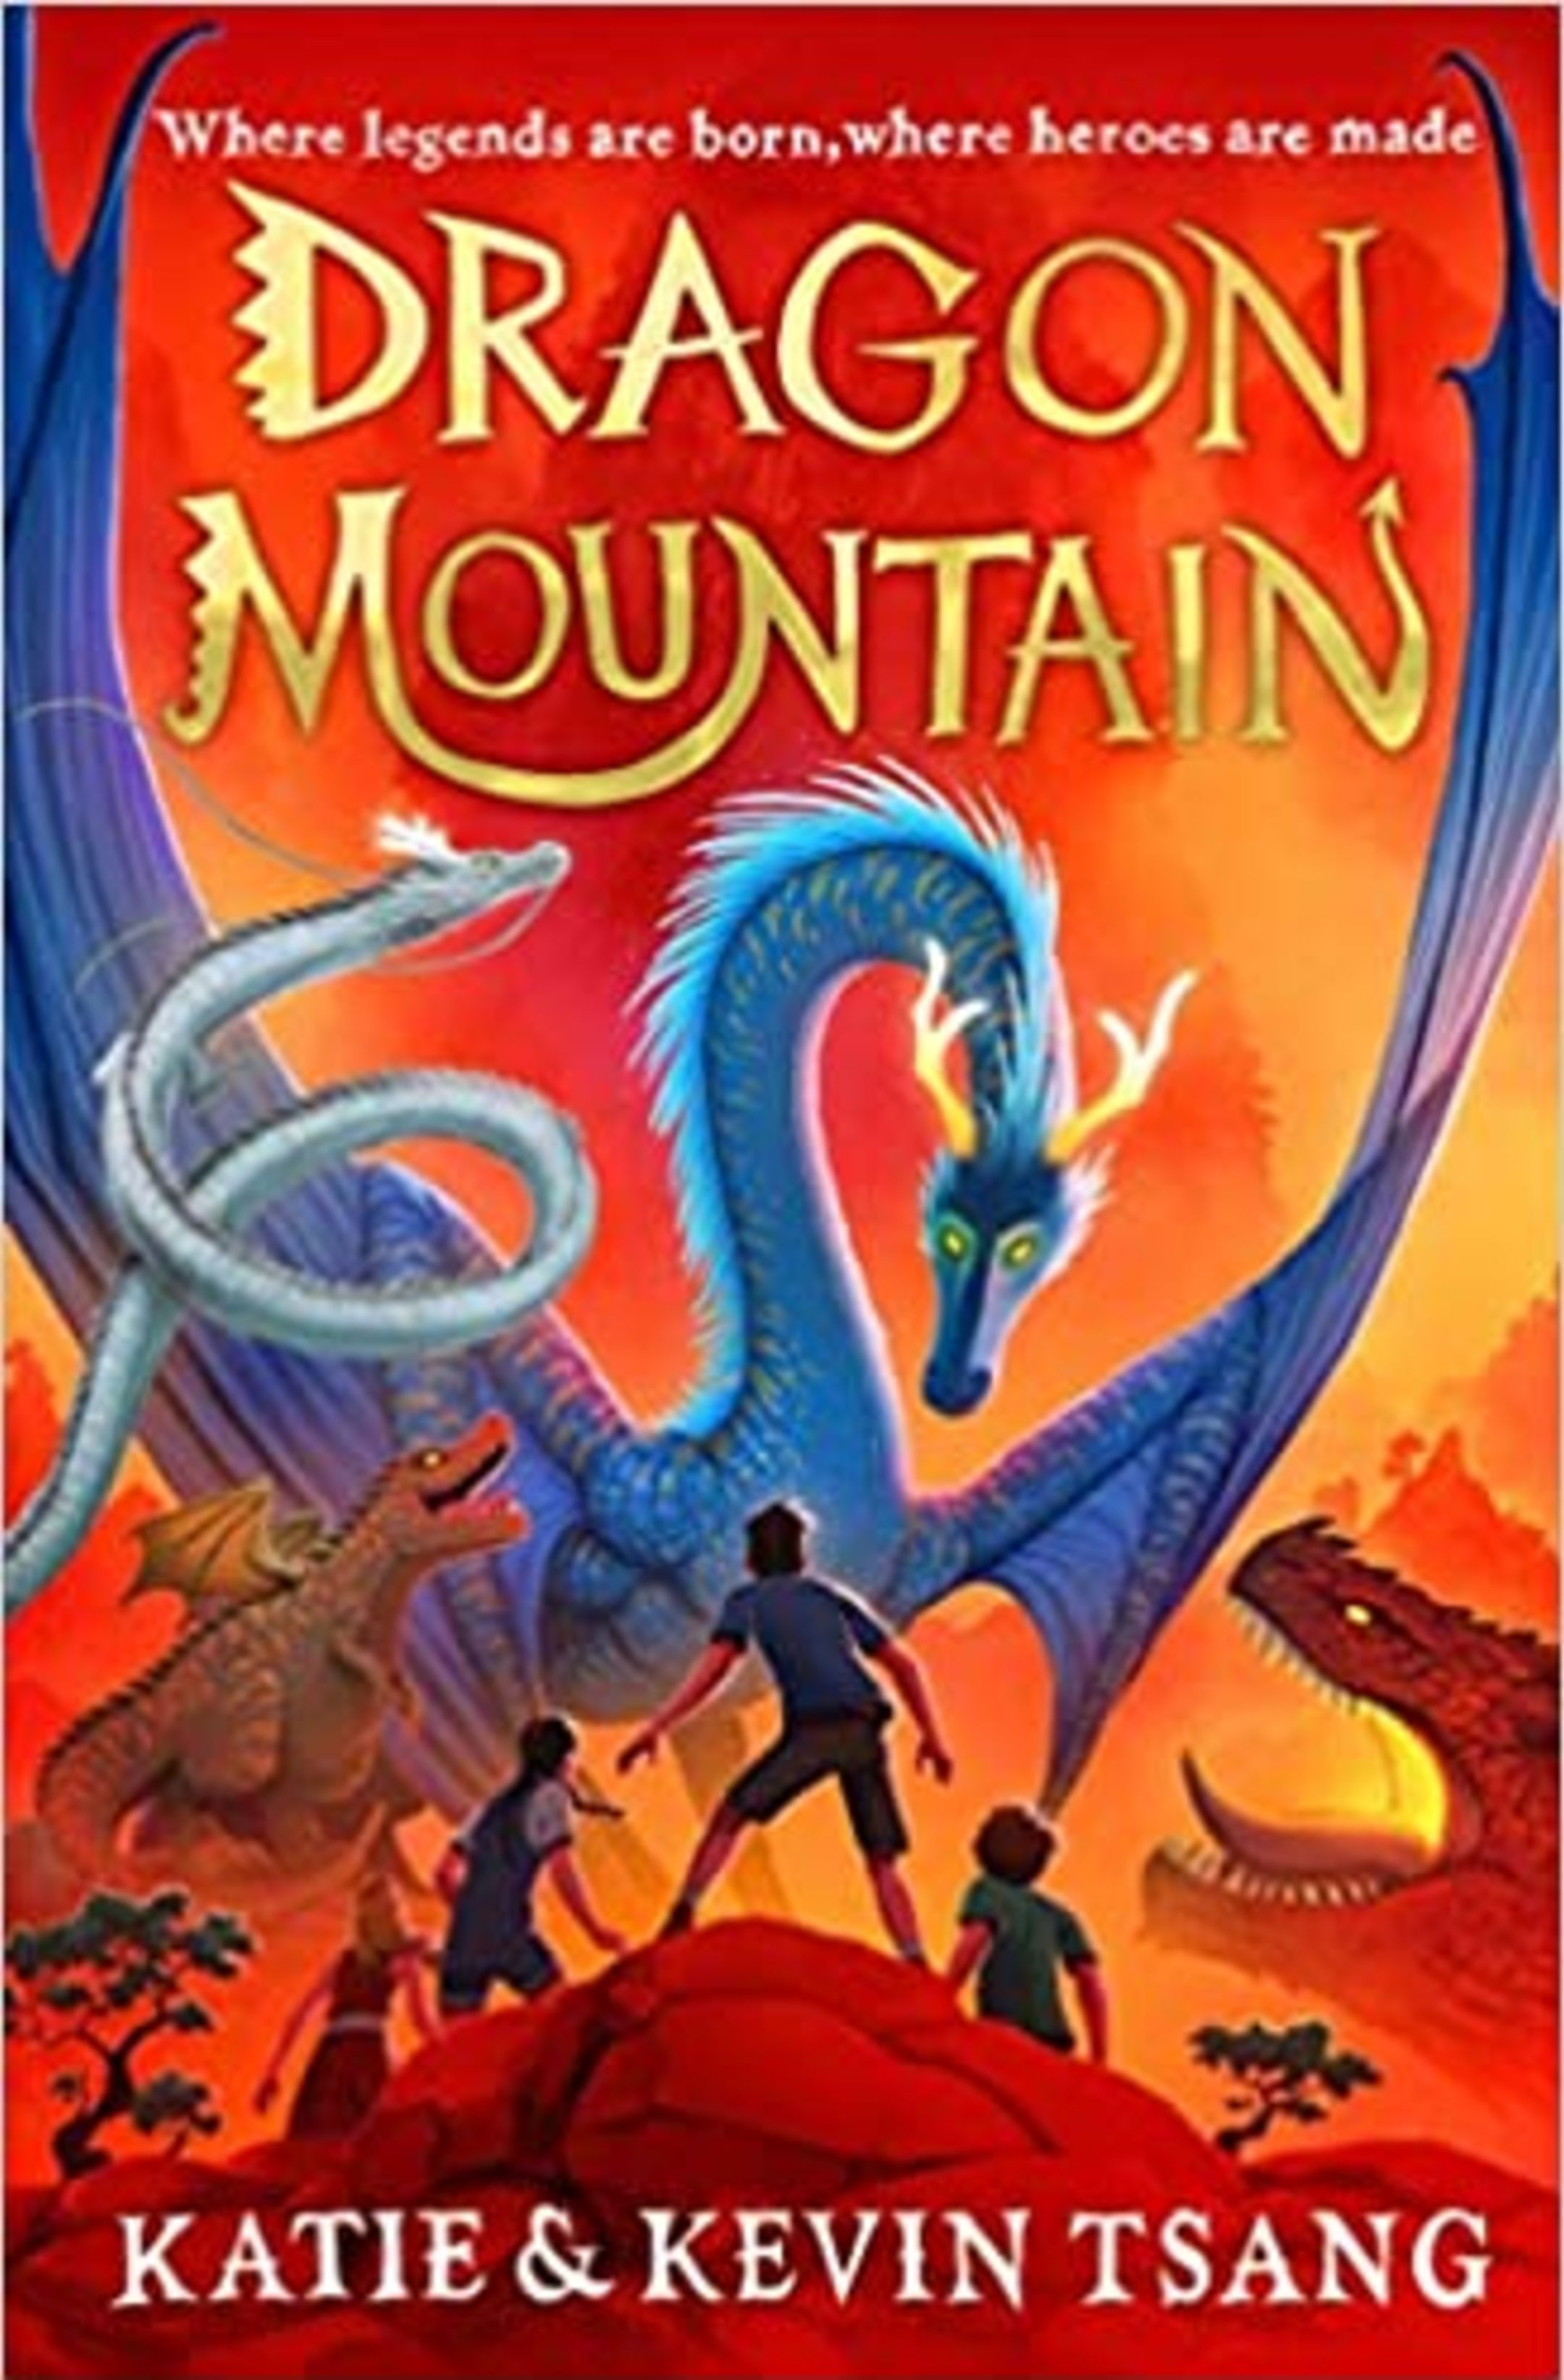 The book cover of Dragon Mountain, by Katie and Kevin Tsang